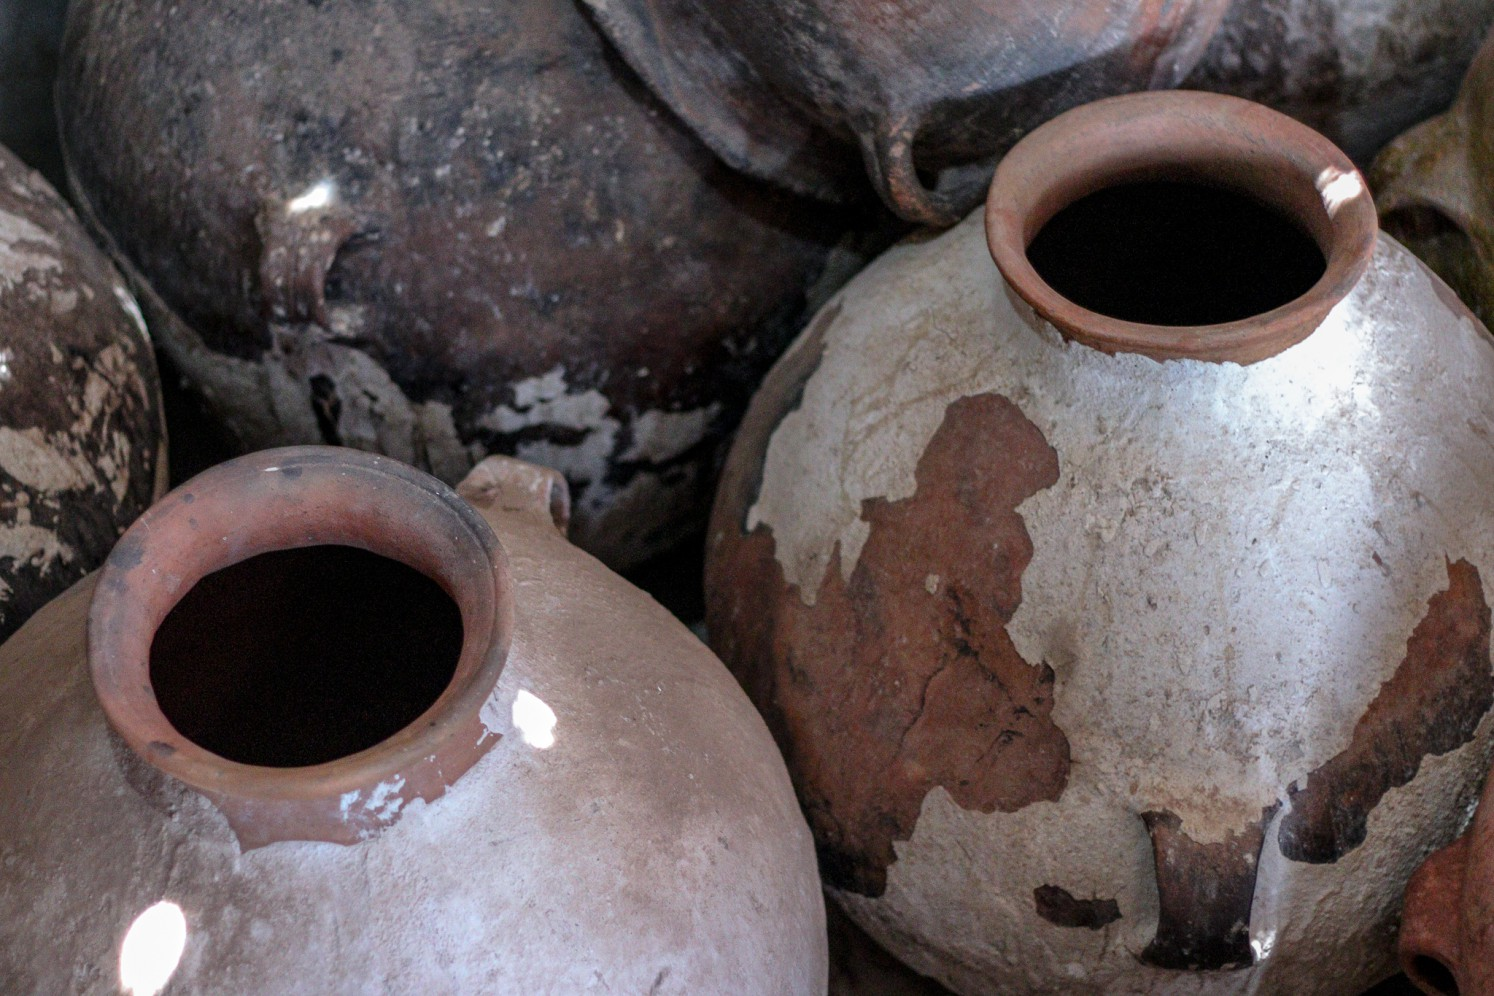 Traditional Clay Pots (Amphora) in the Cinti Valley, Bolivia awaiting reconditioning.